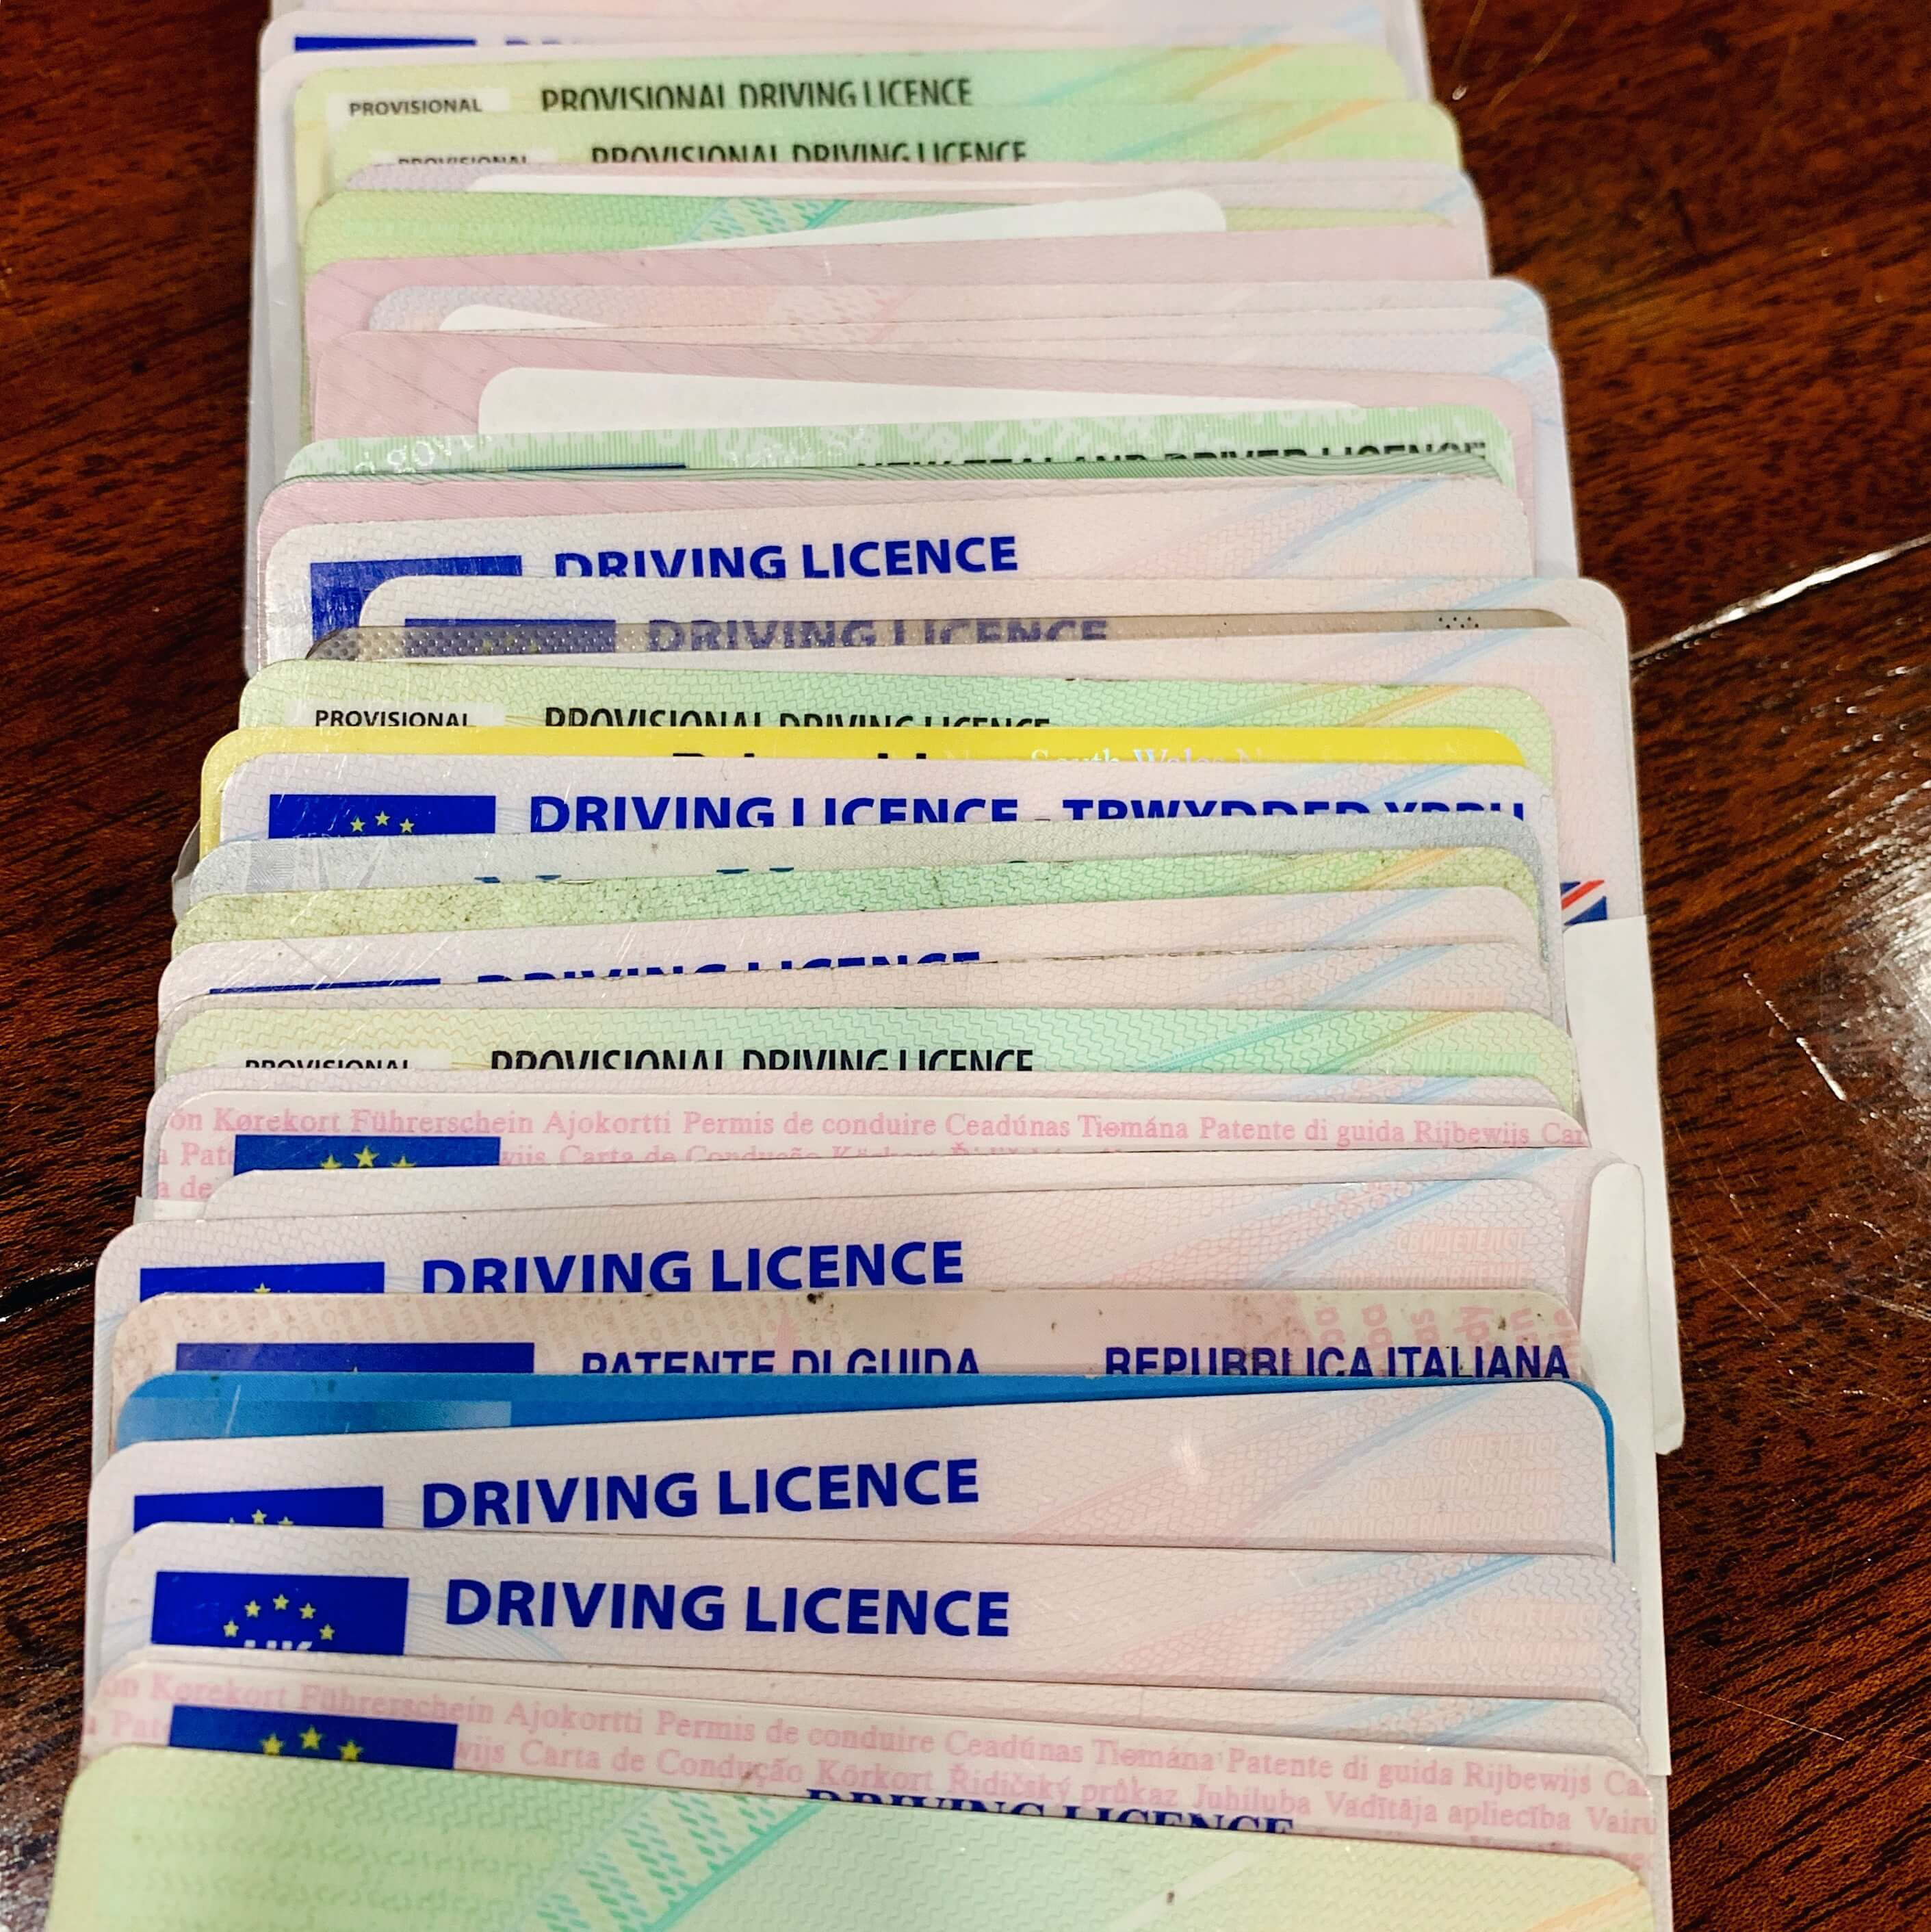 notlost-lost-property-driving-cards-licences